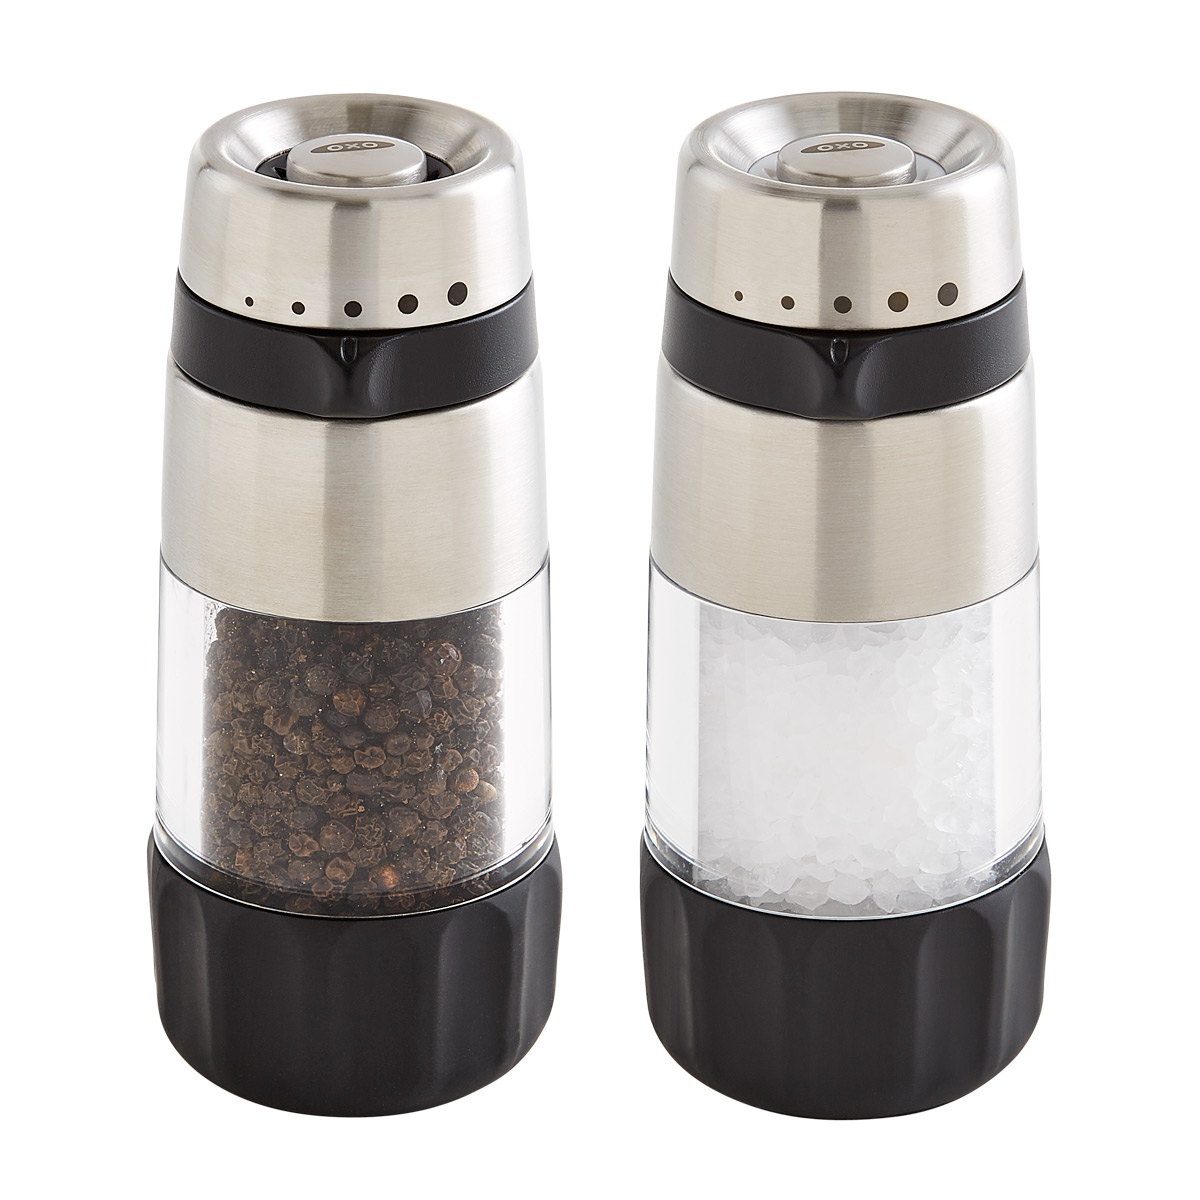 Unique Salt And Pepper Grinders Oxo Good Grips Salt And Pepper Grinders The Container Store